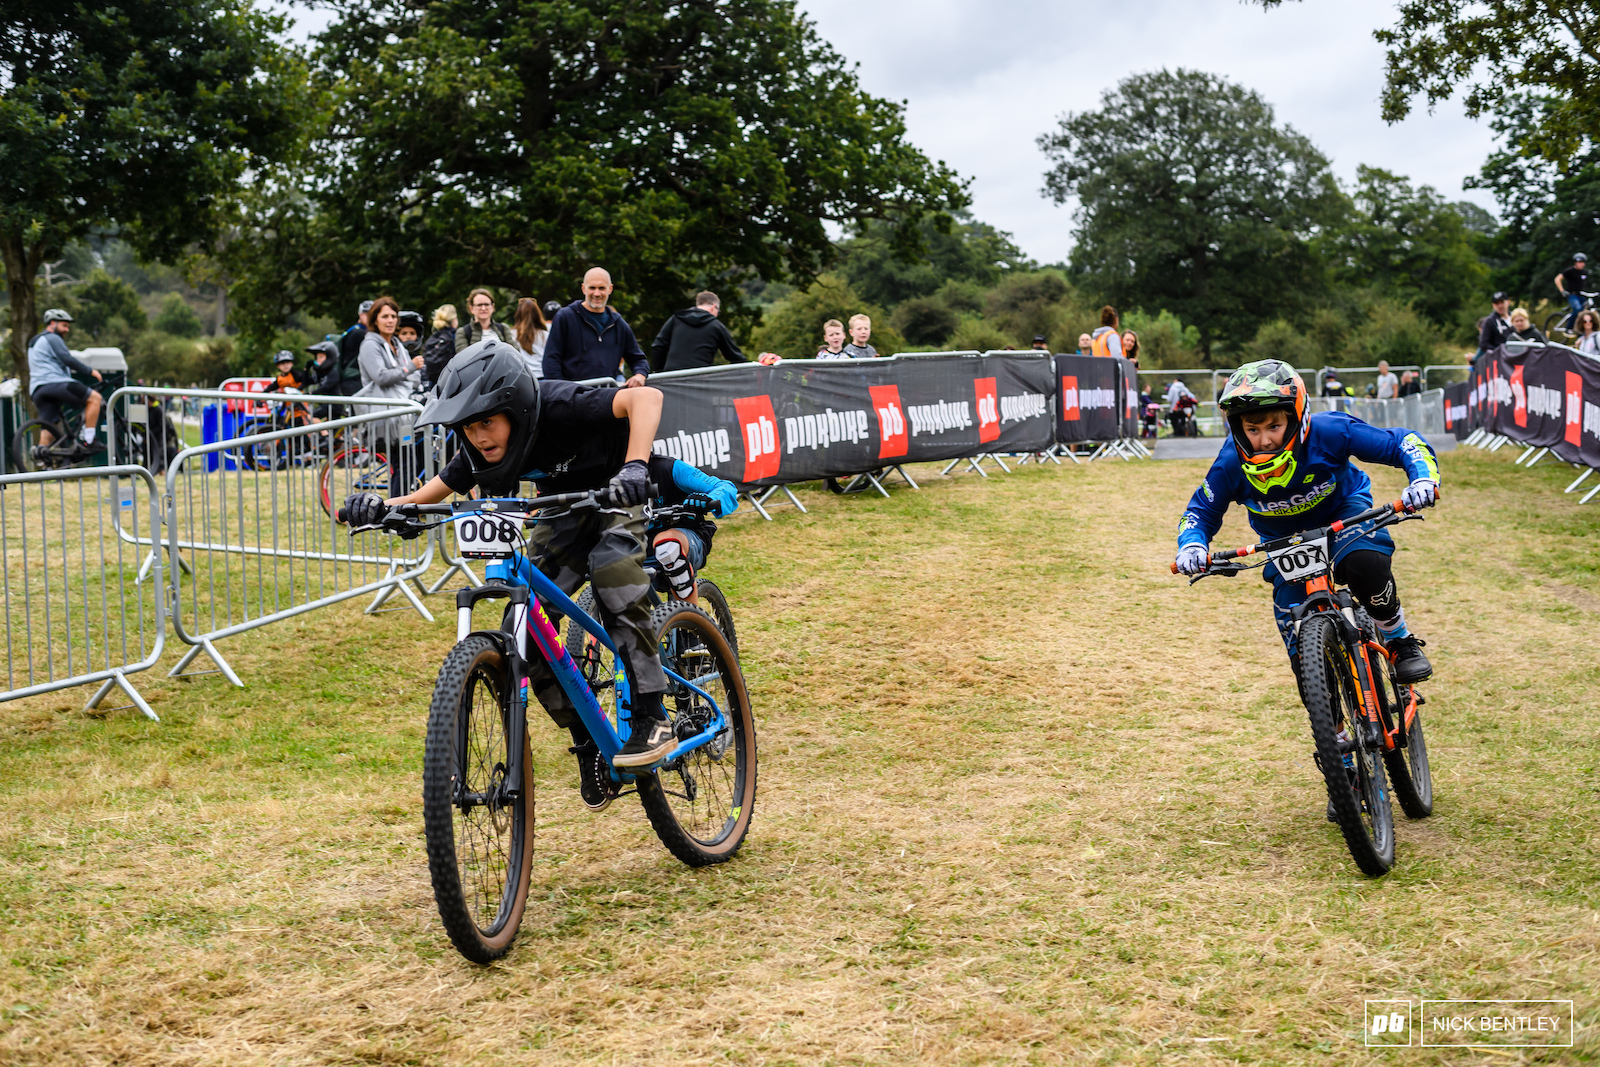 There was no quarter given in the Rippers racing. These kids were more determined than the adults to get the win